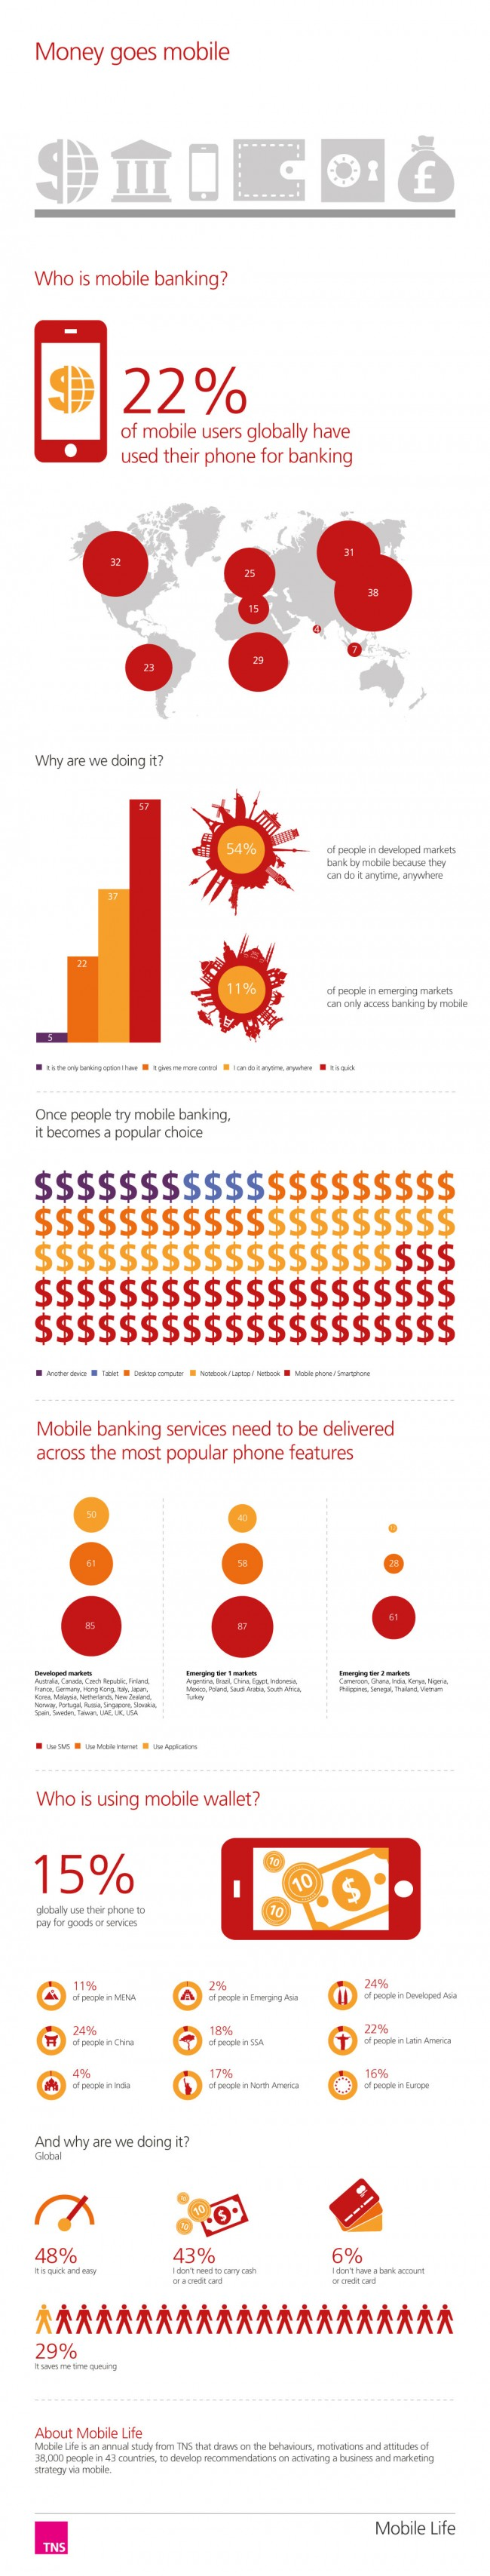 TNS-Mobile-Life-Infographic-Money-goes-mobile